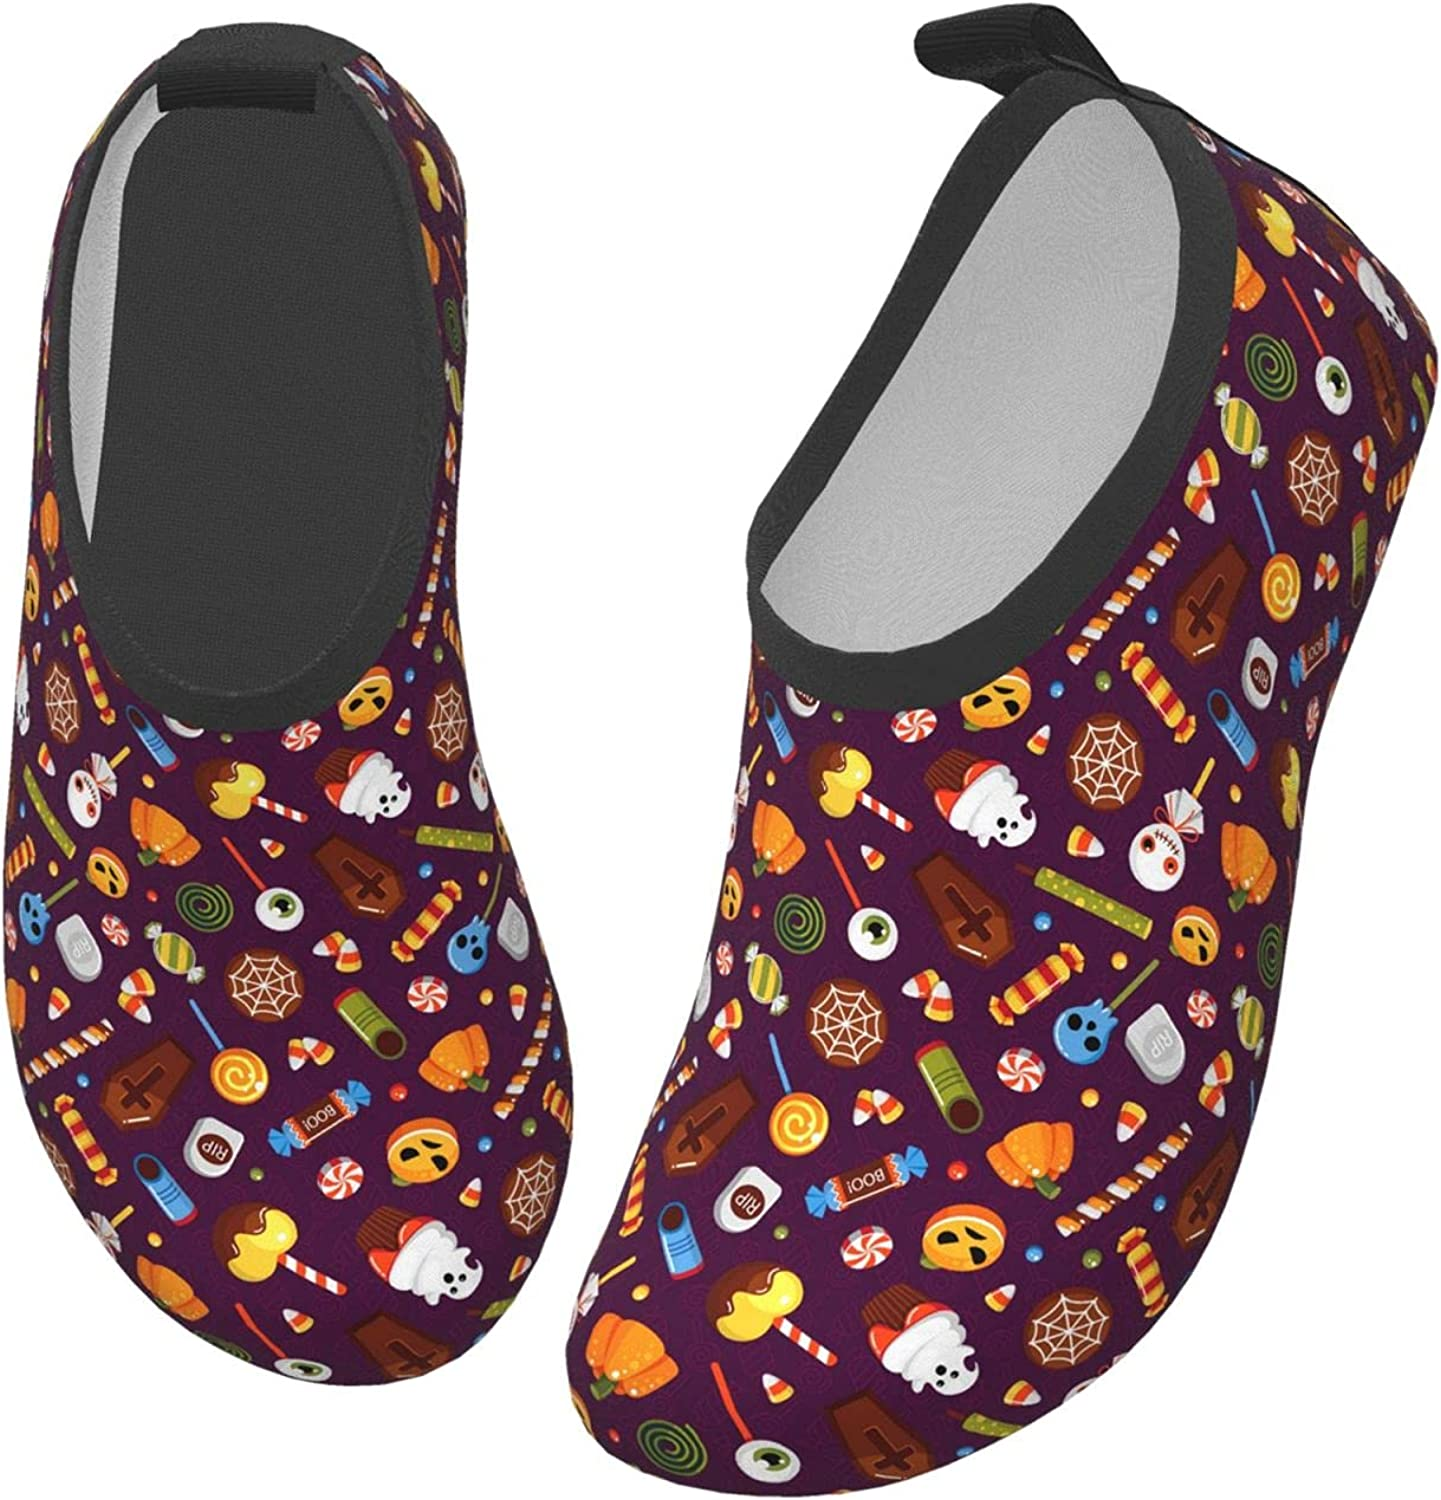 Pumpkin Ghost Halloween Horror Children's Water Shoes Feel Barefoot for Swimming Beach Boating Surfing Yoga